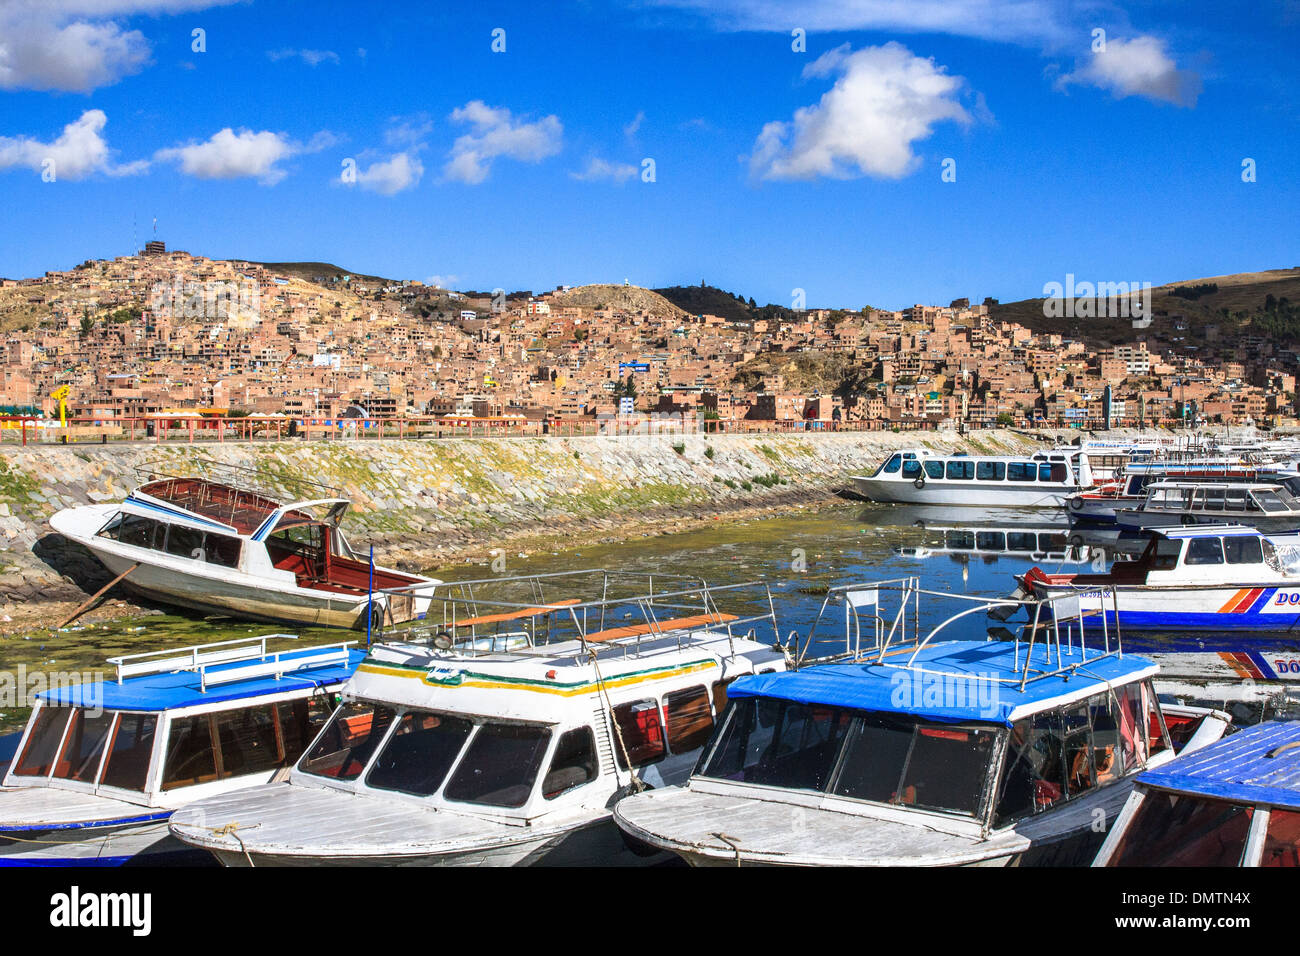 Tourist boats in the harbour of Puno on the titicaca lake - Stock Image